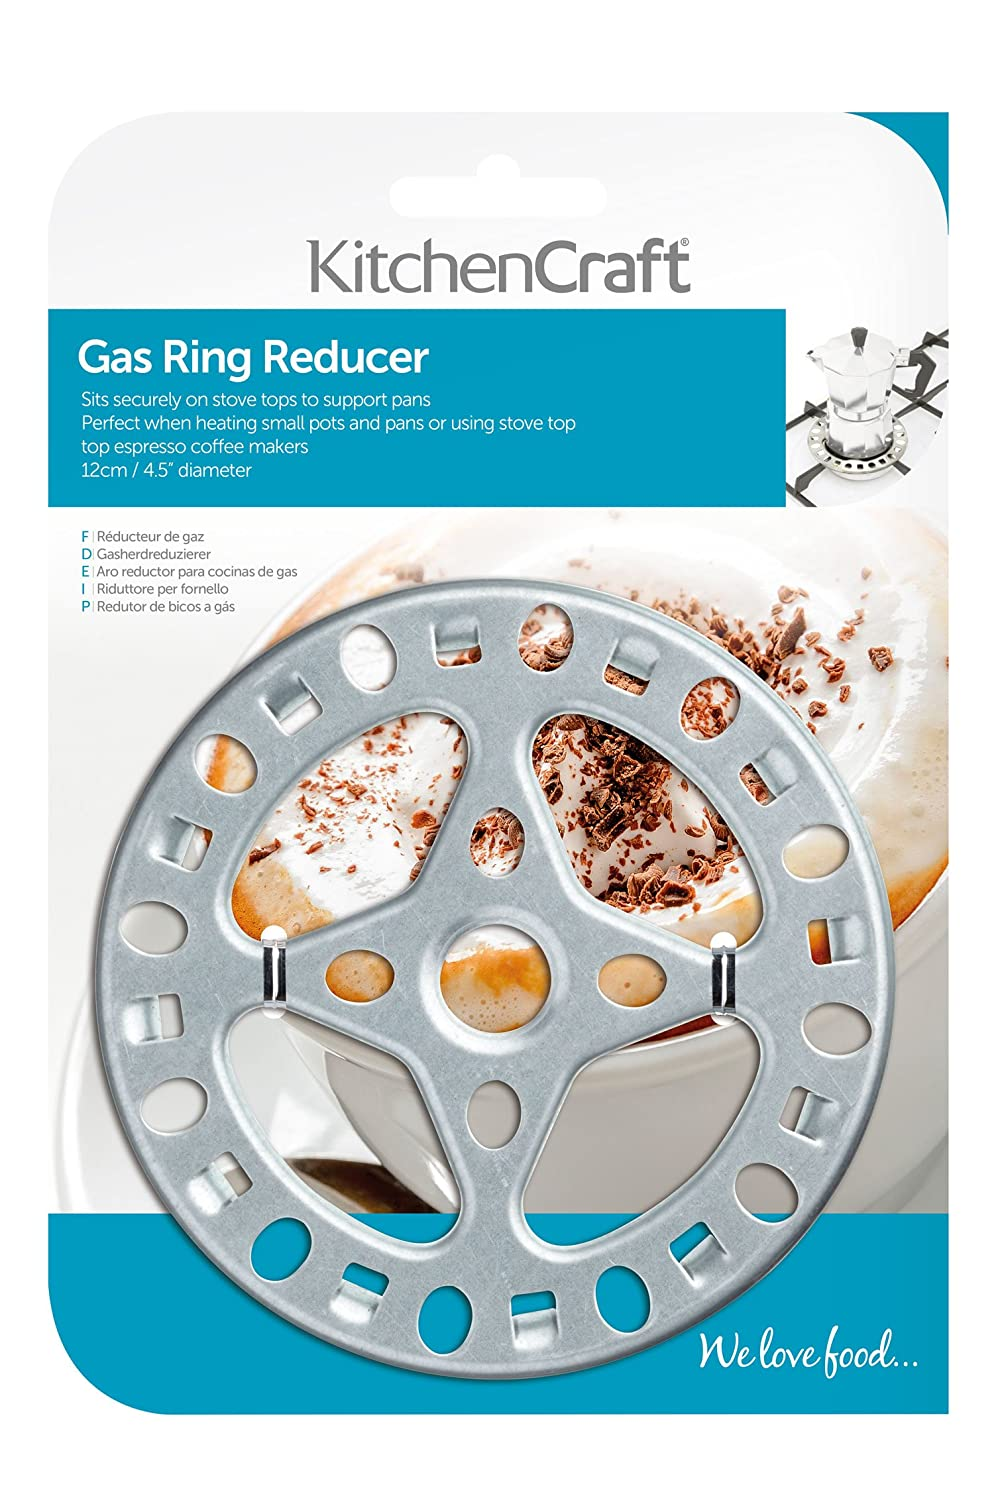 Amazon.com: Gas Reducer Ring For Small Pans: Cookware Accessories: Kitchen & Dining